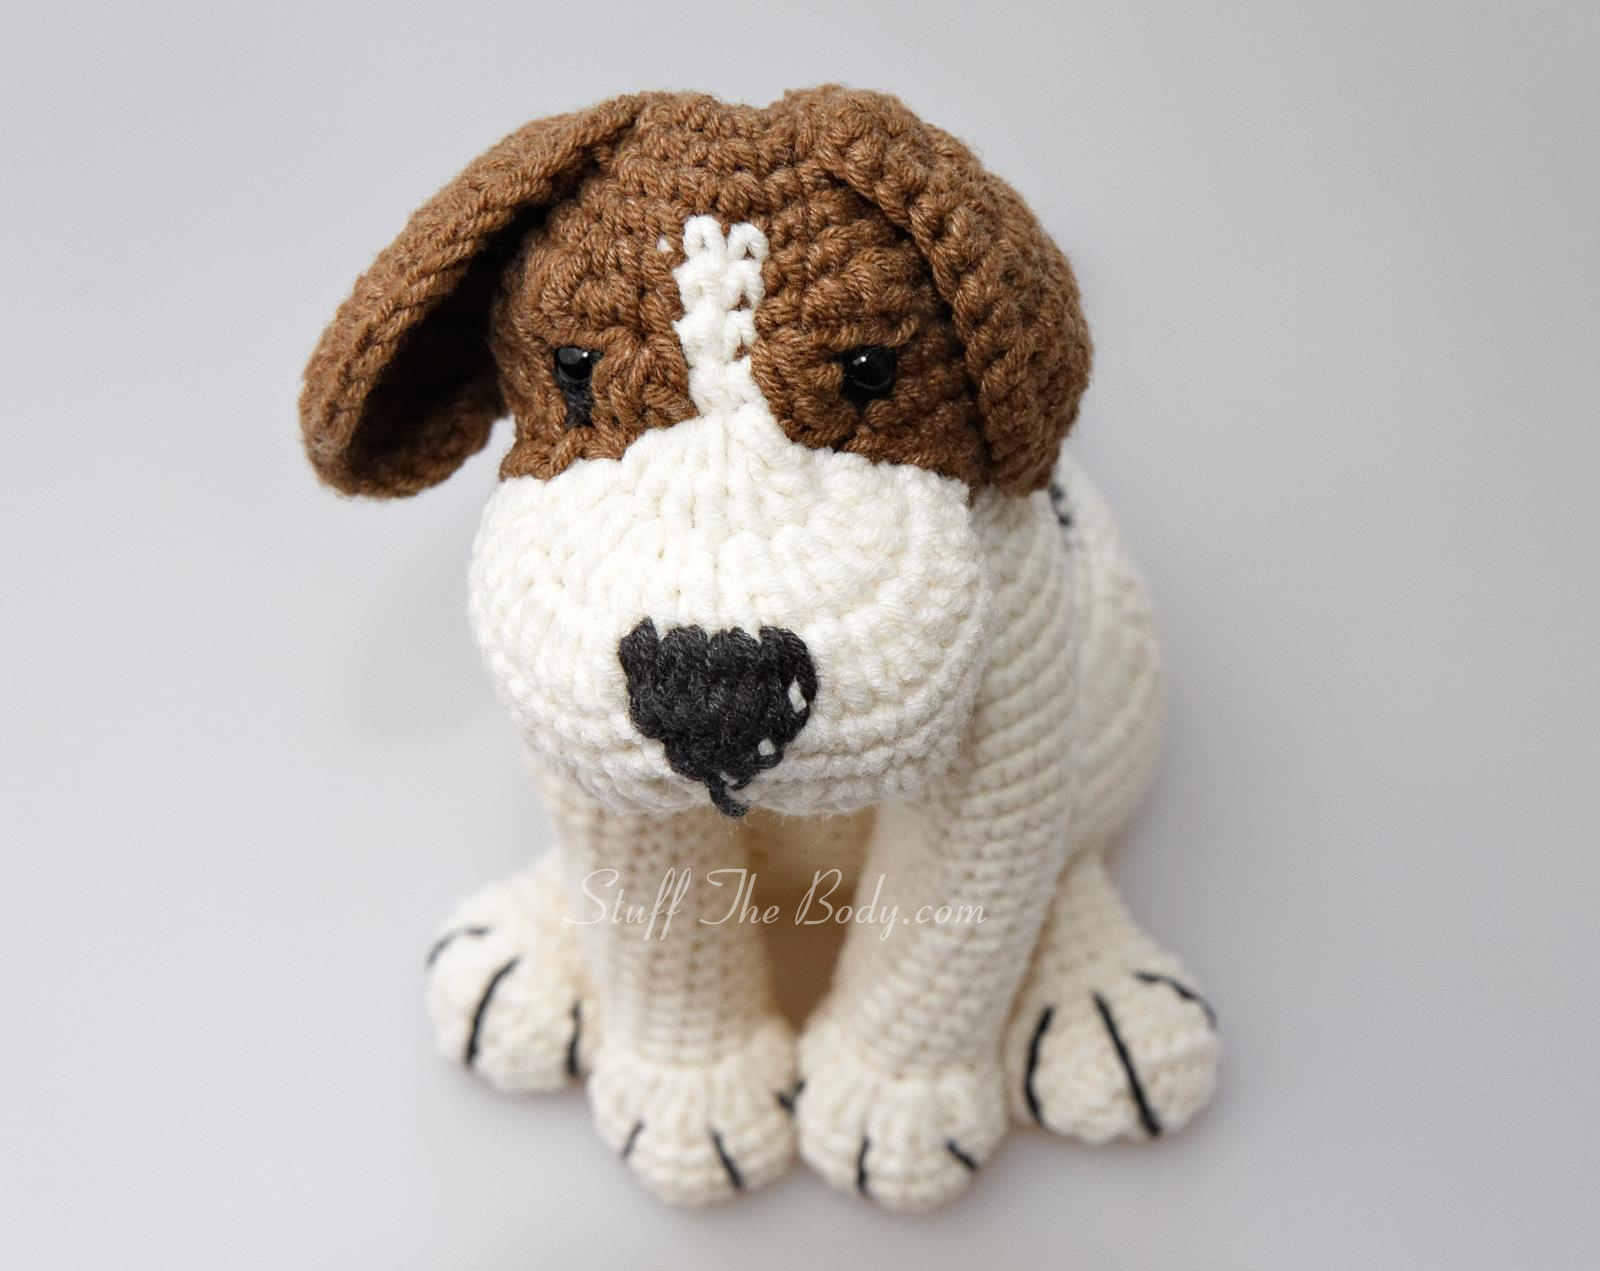 Free Pattern For Amigurumi Dog : Stuff The Body Advanced Amigurumi Patterns